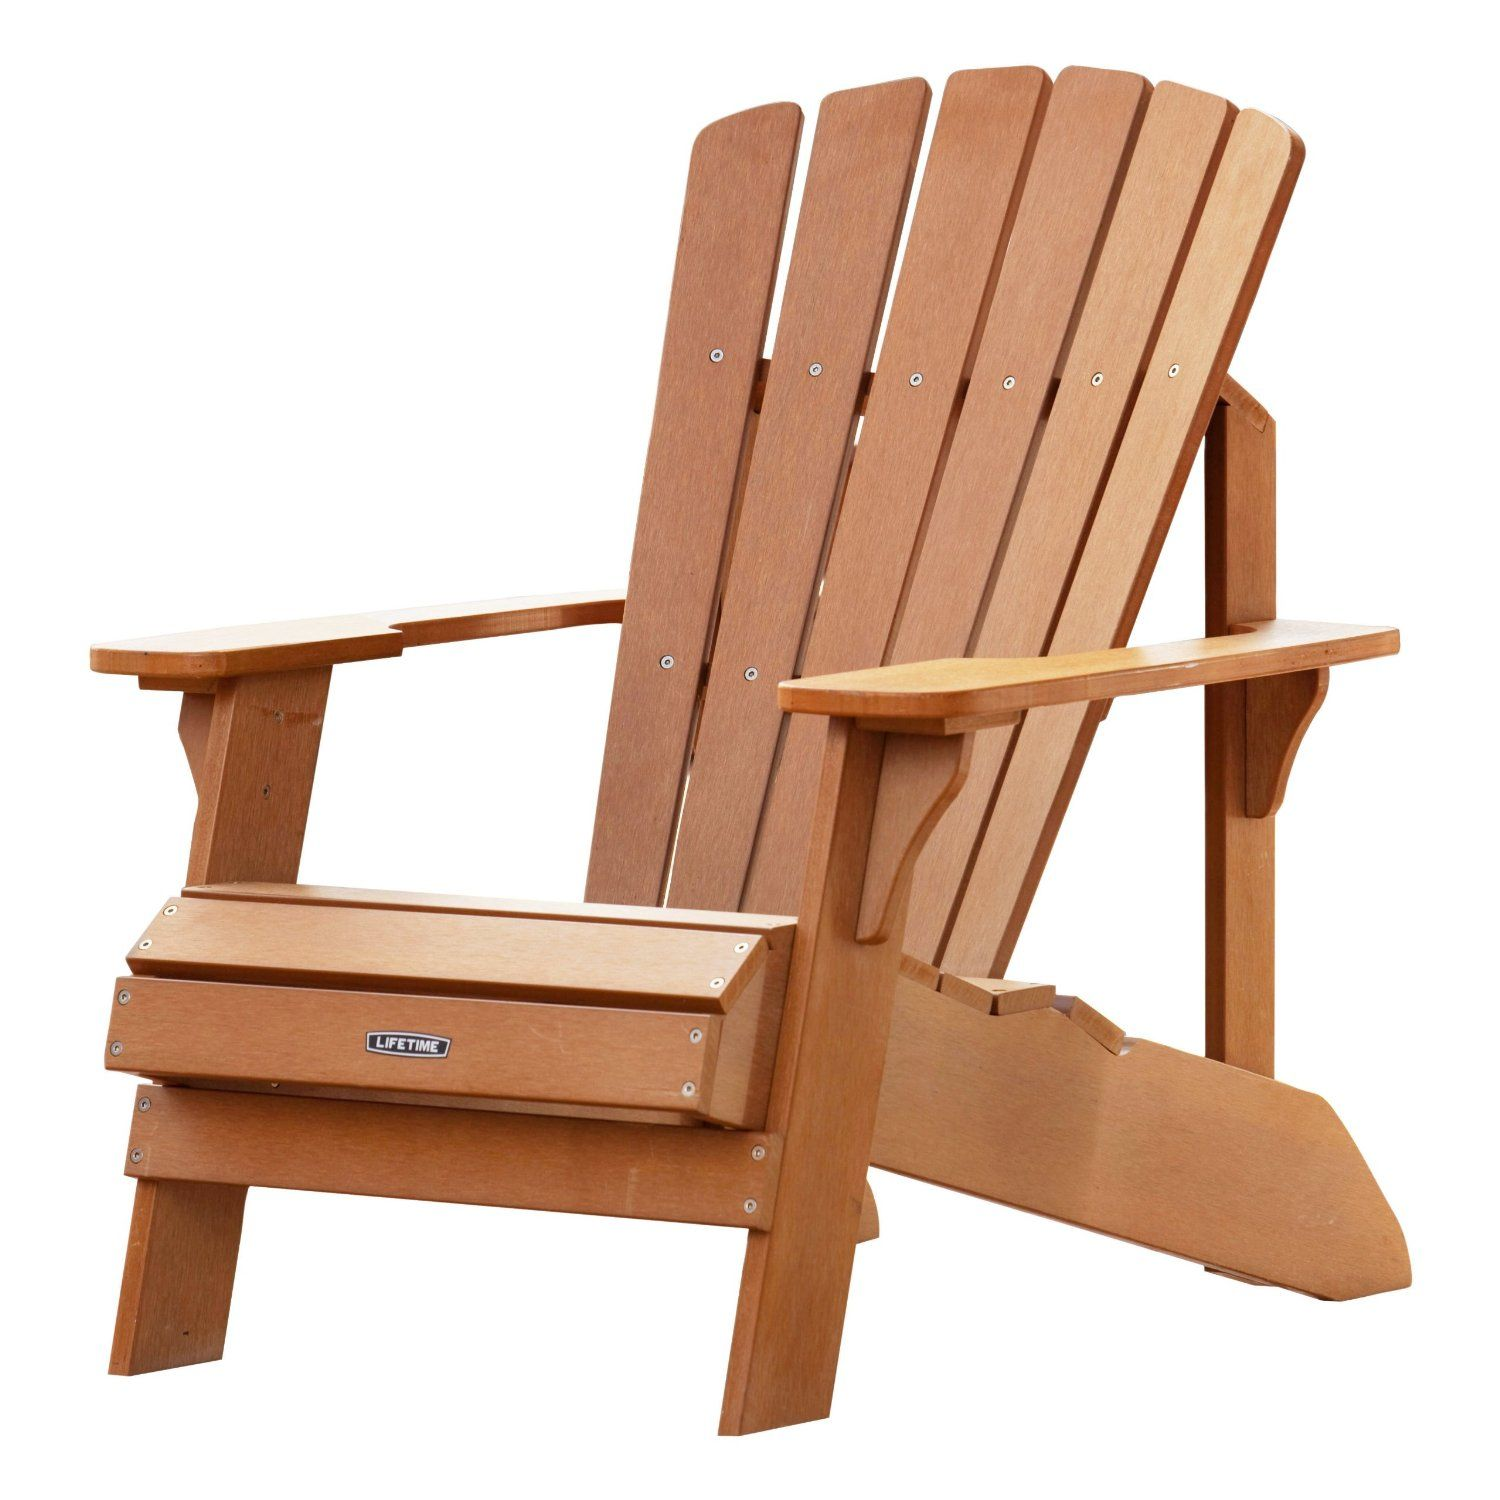 Outdoor Patio Chair Models With Resin Adirondack Chairs: Nursery Rocking  Chair With Resin Adirondack Chairs